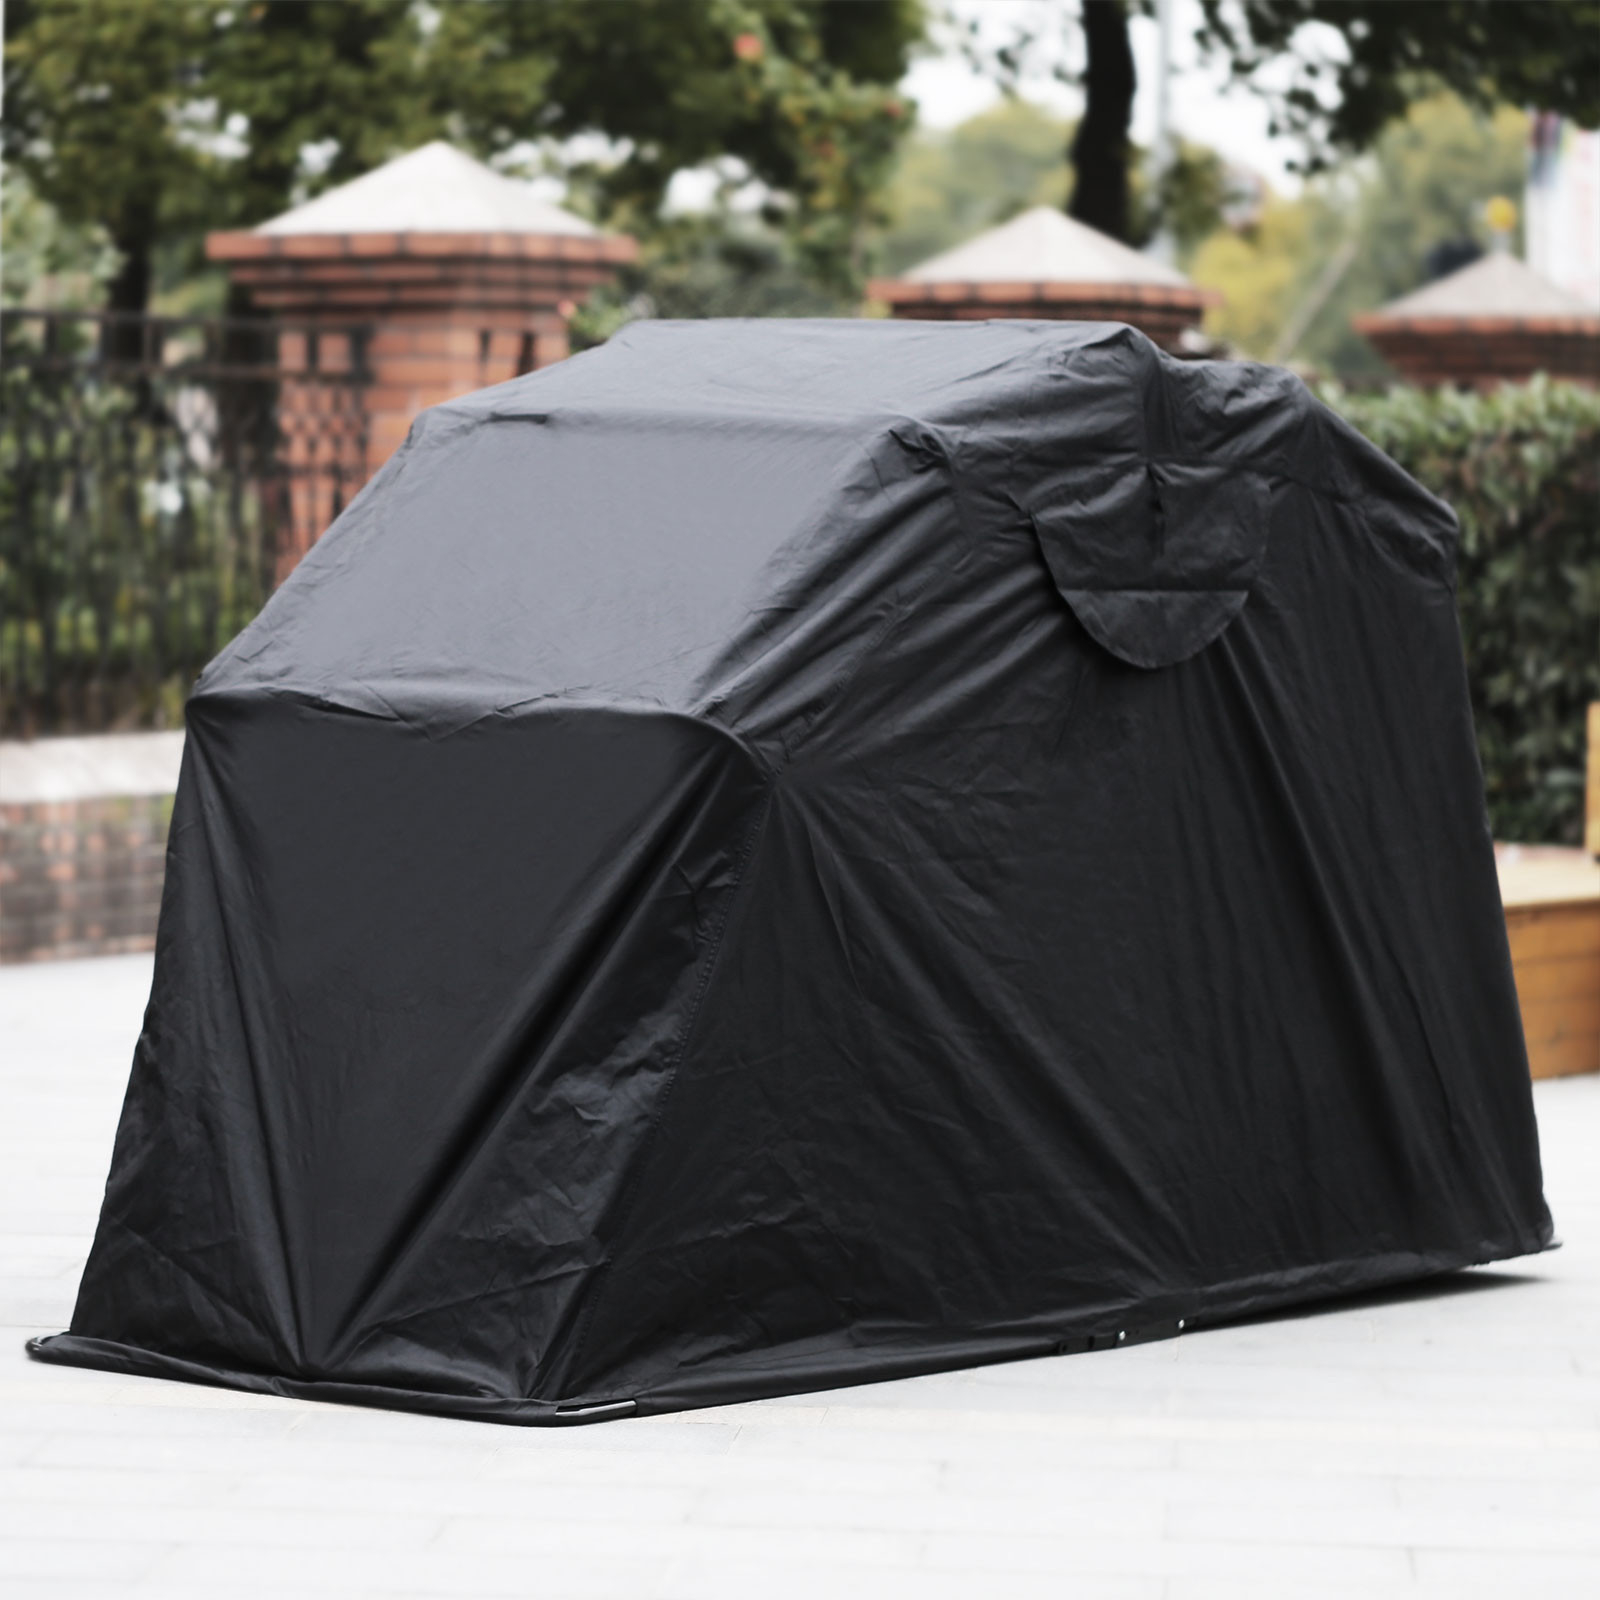 Motorcycle Covers Shelter : Motorcycle cover scooter shelter motorbike tent bike